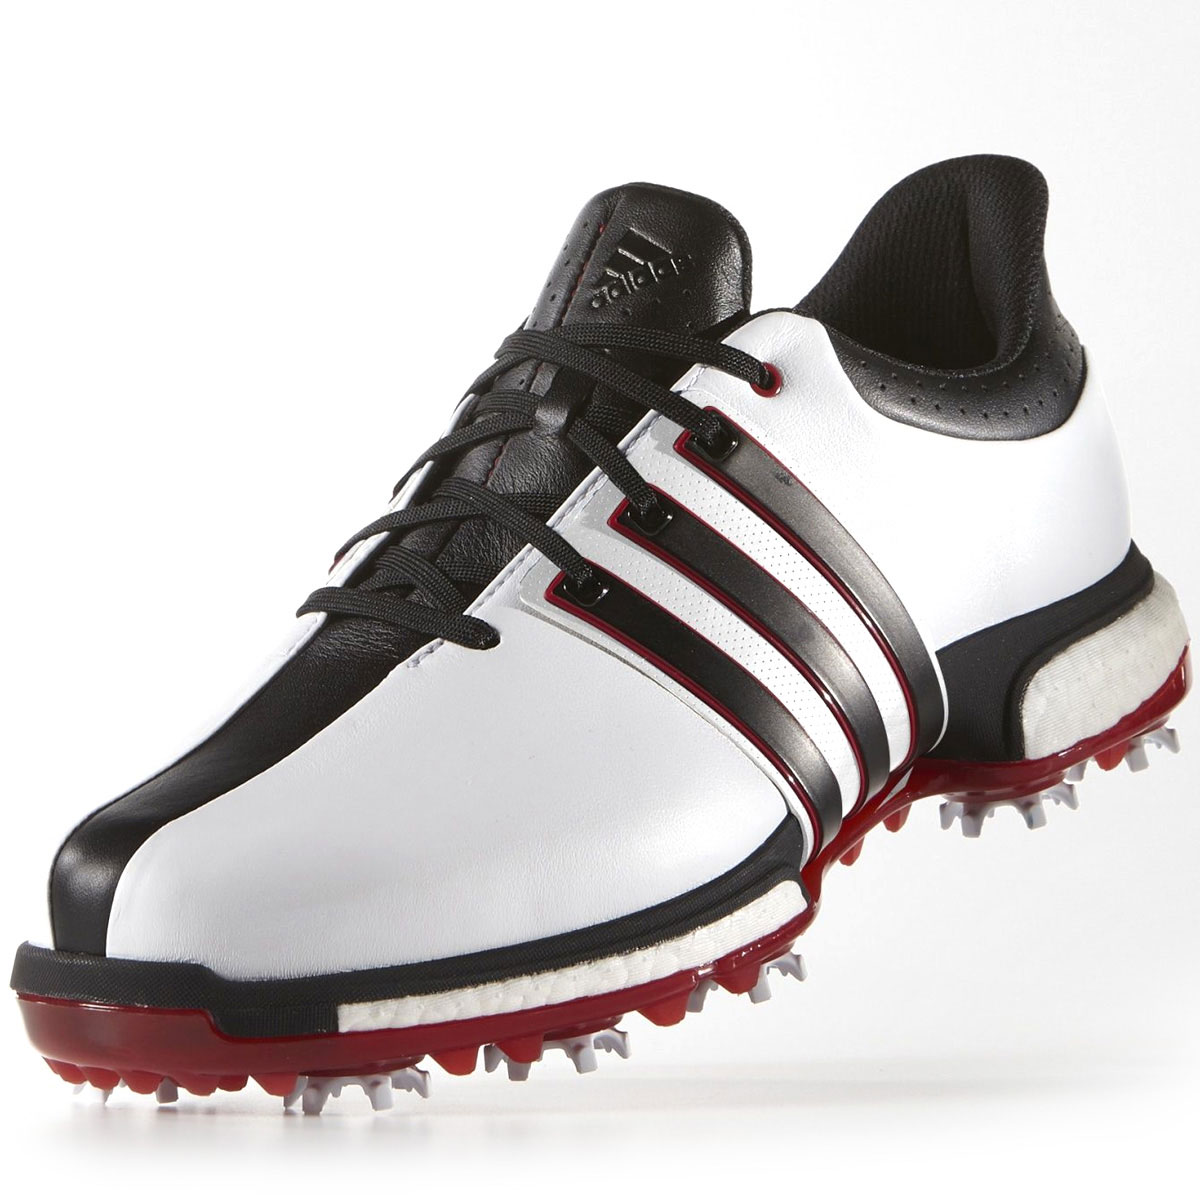 Are The Adidas Tour  Boost Mens Golf Shoe Waterproof